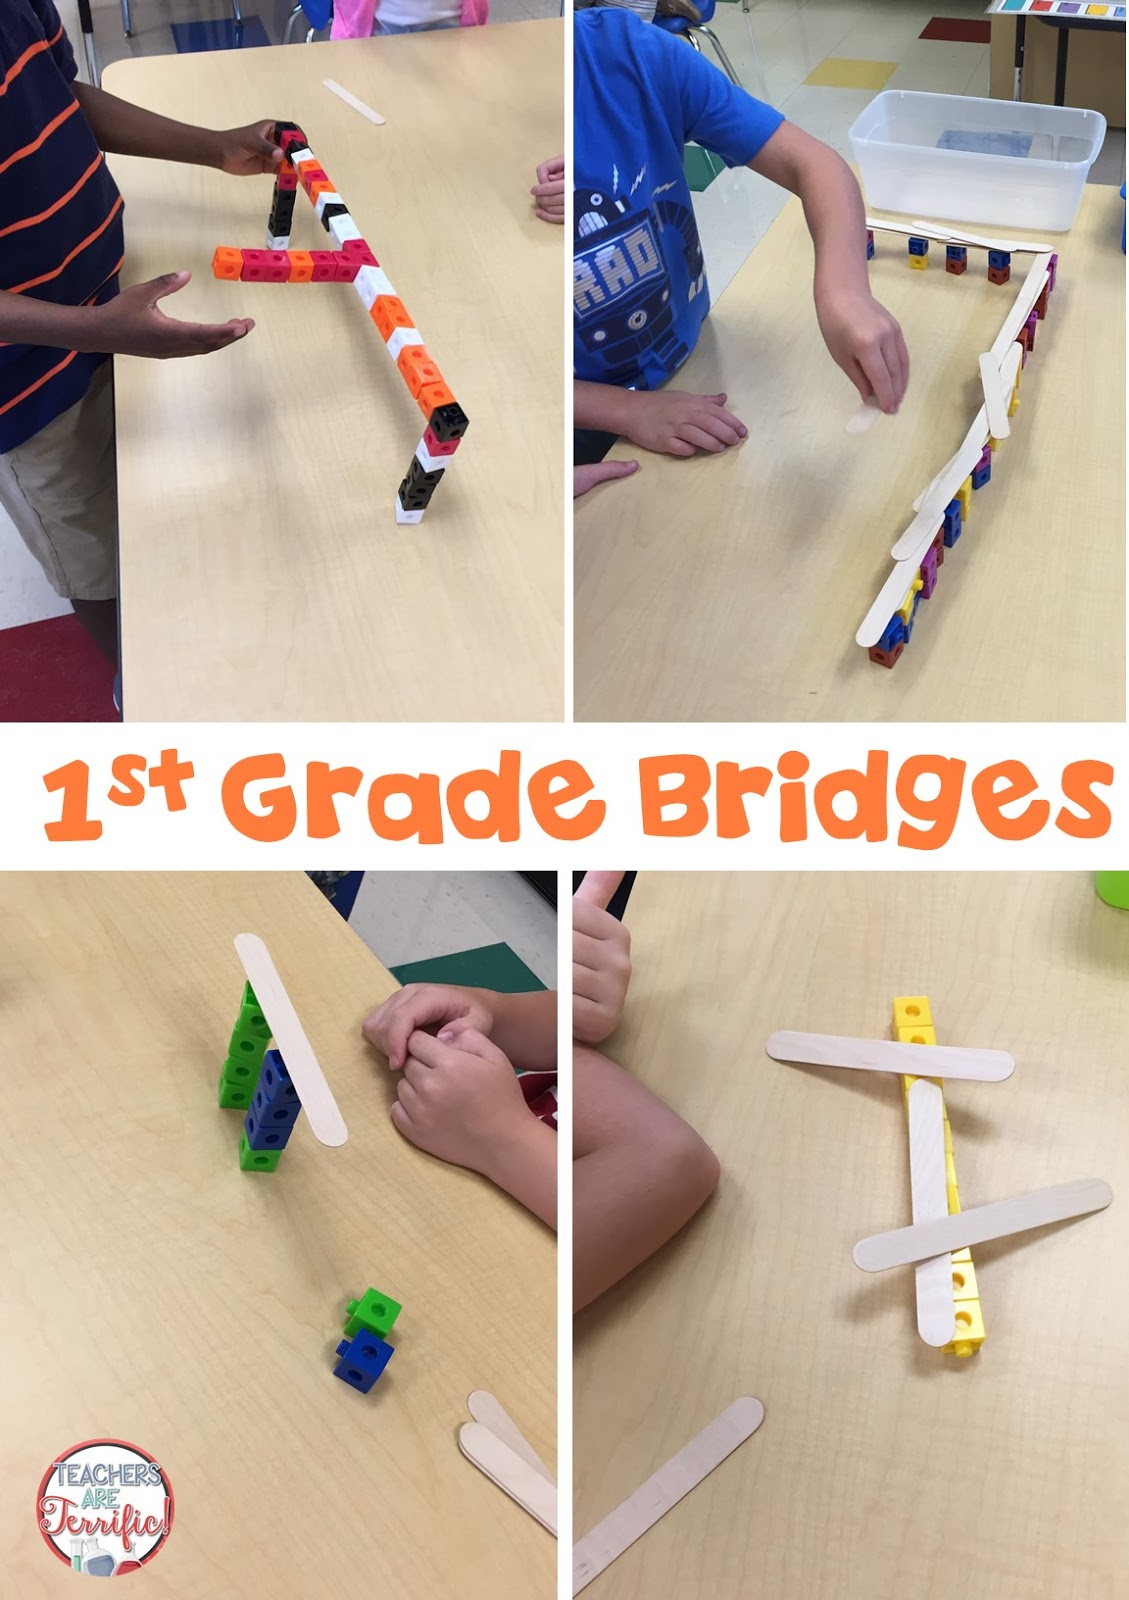 5 Things I Learned About Stem From First Graders